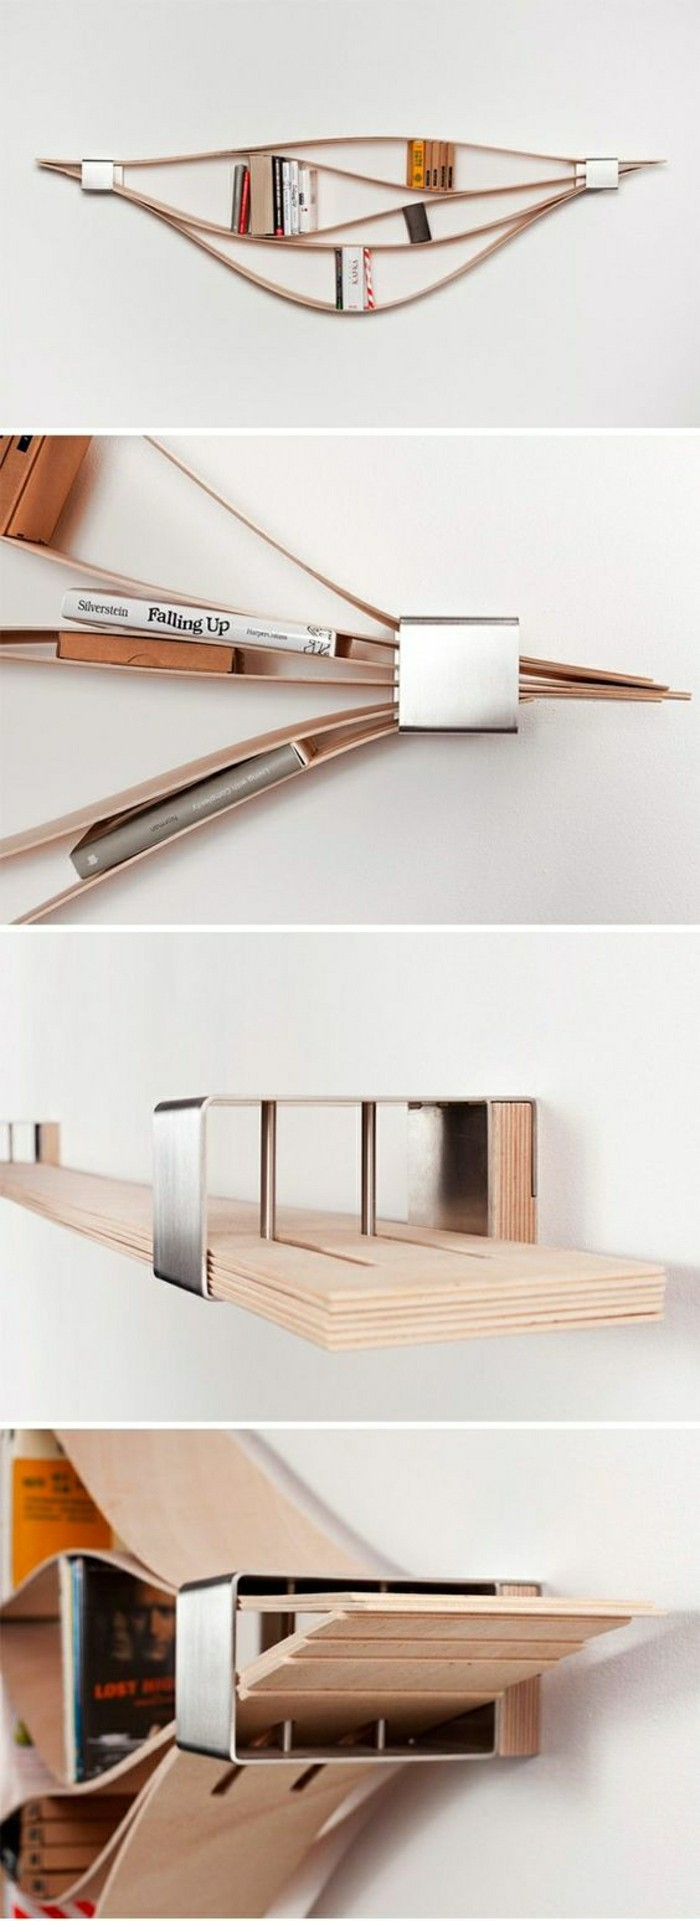 L tag re biblioth que comment choisir le bon design - Etagere en bois design ...